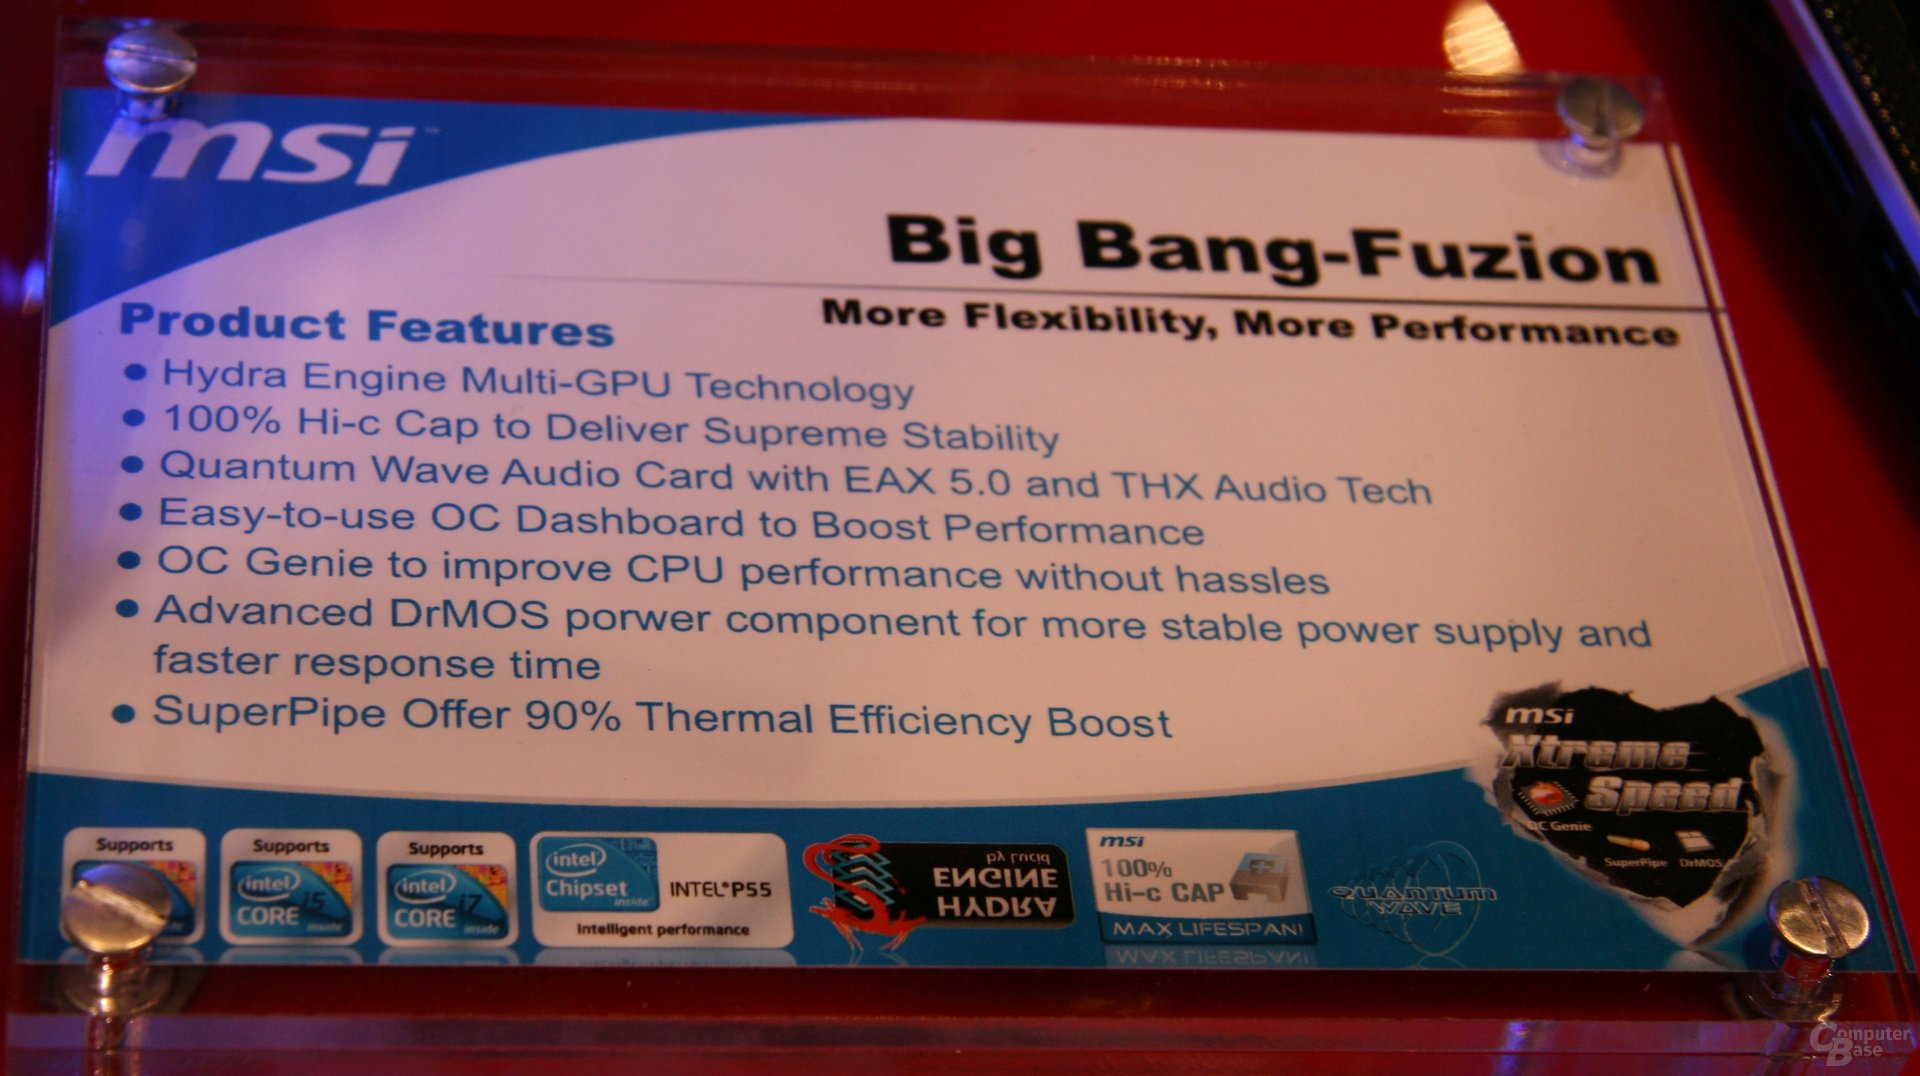 CES 2010: MSI Big Bang Fuzion